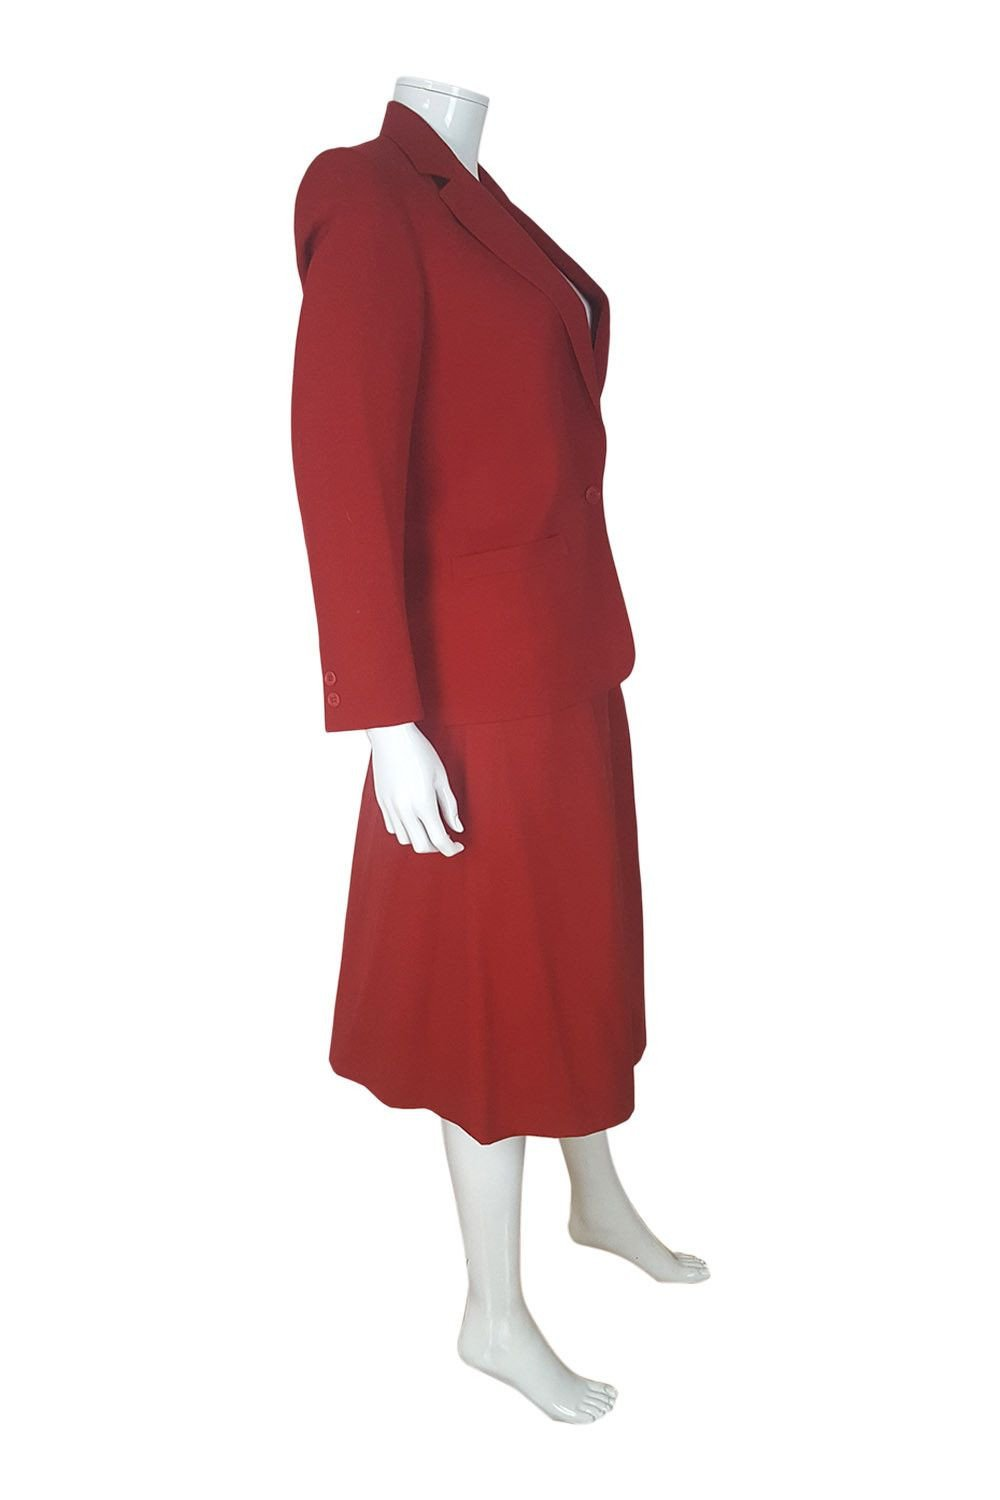 CHRISTIAN DIOR Vintage Red Wool Two Piece Skirt Suit-Christian Dior-The Freperie